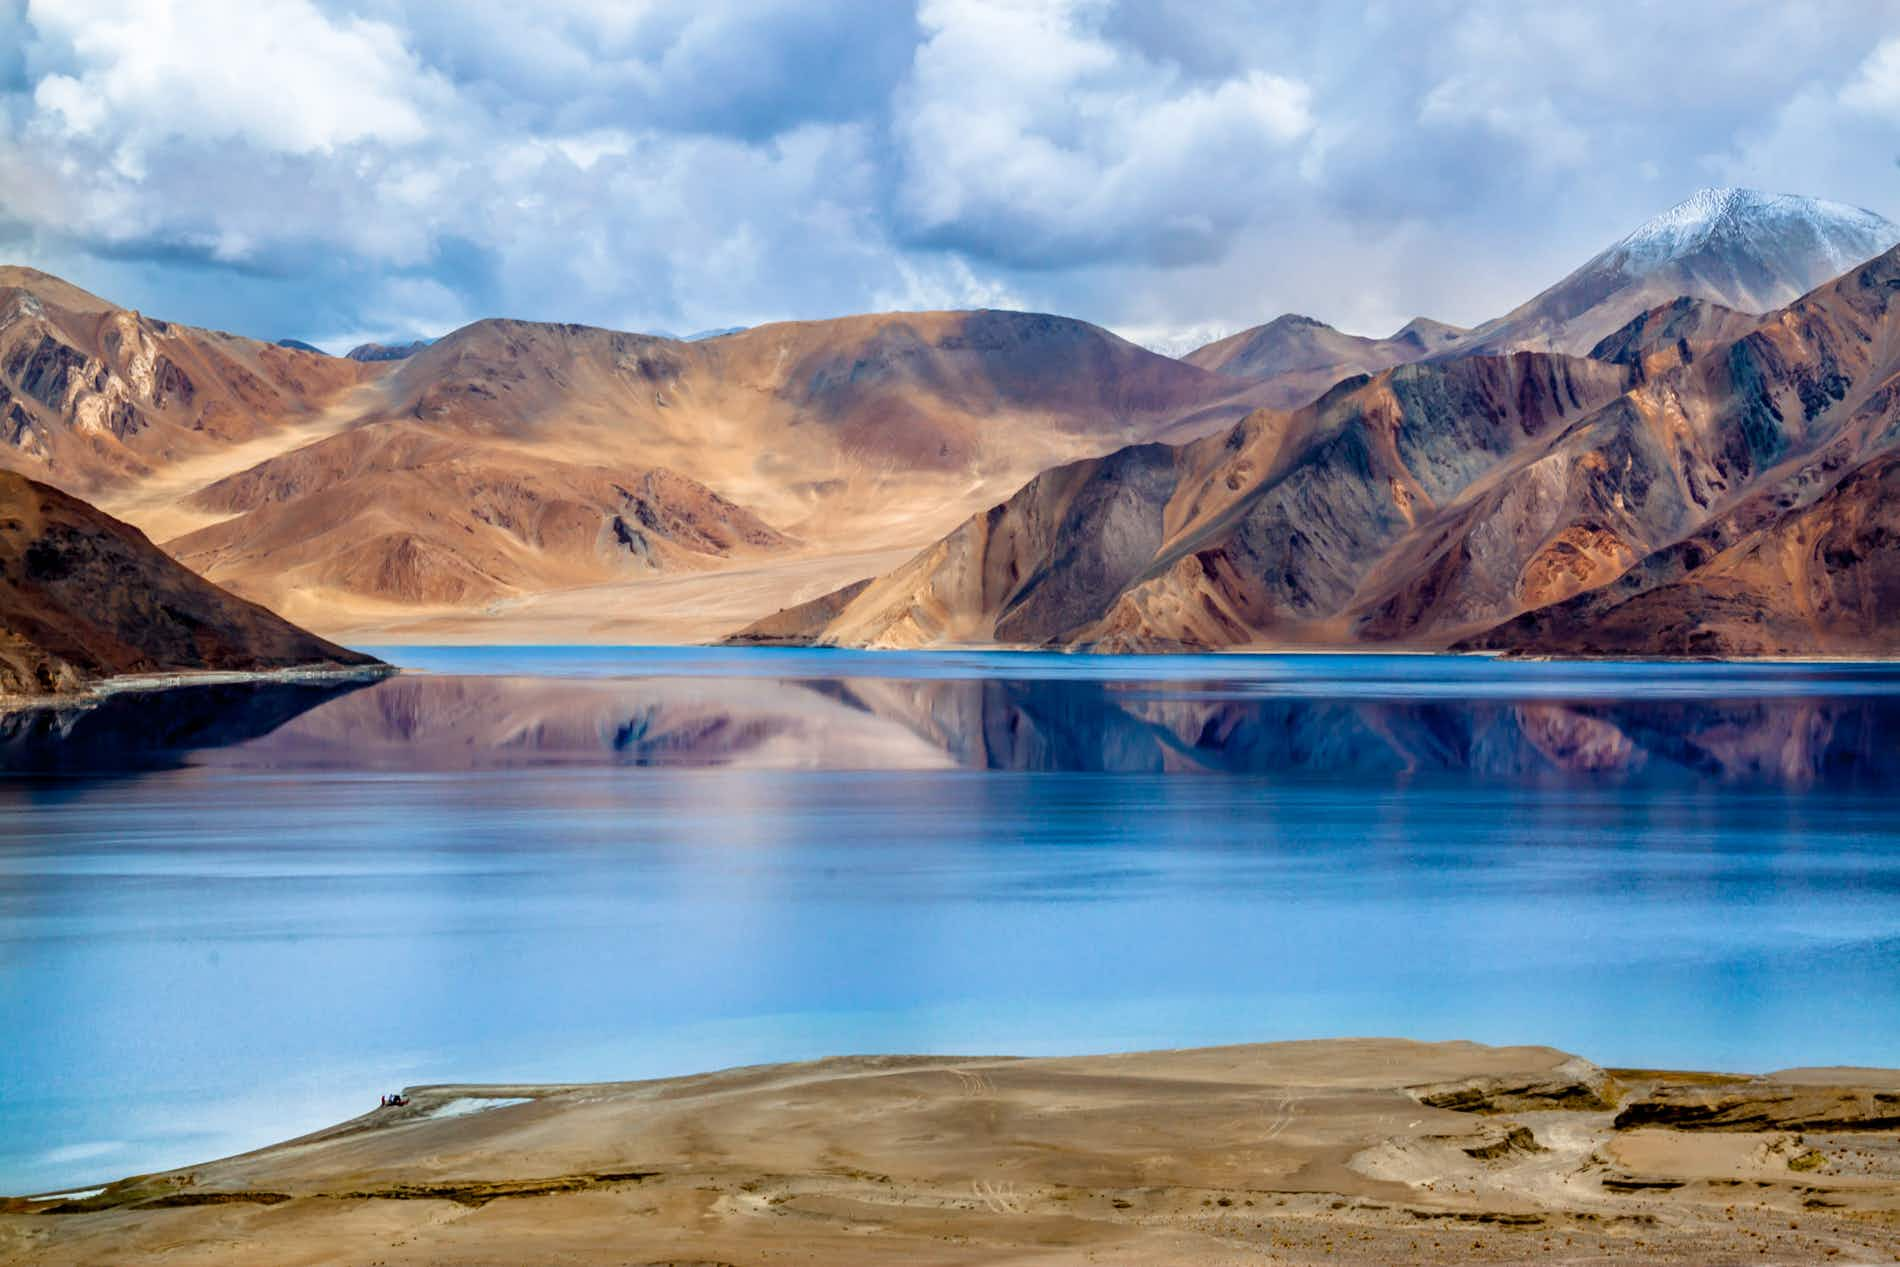 Lost in Leh: travel bloggers share top tips for visiting the unique Indian destination